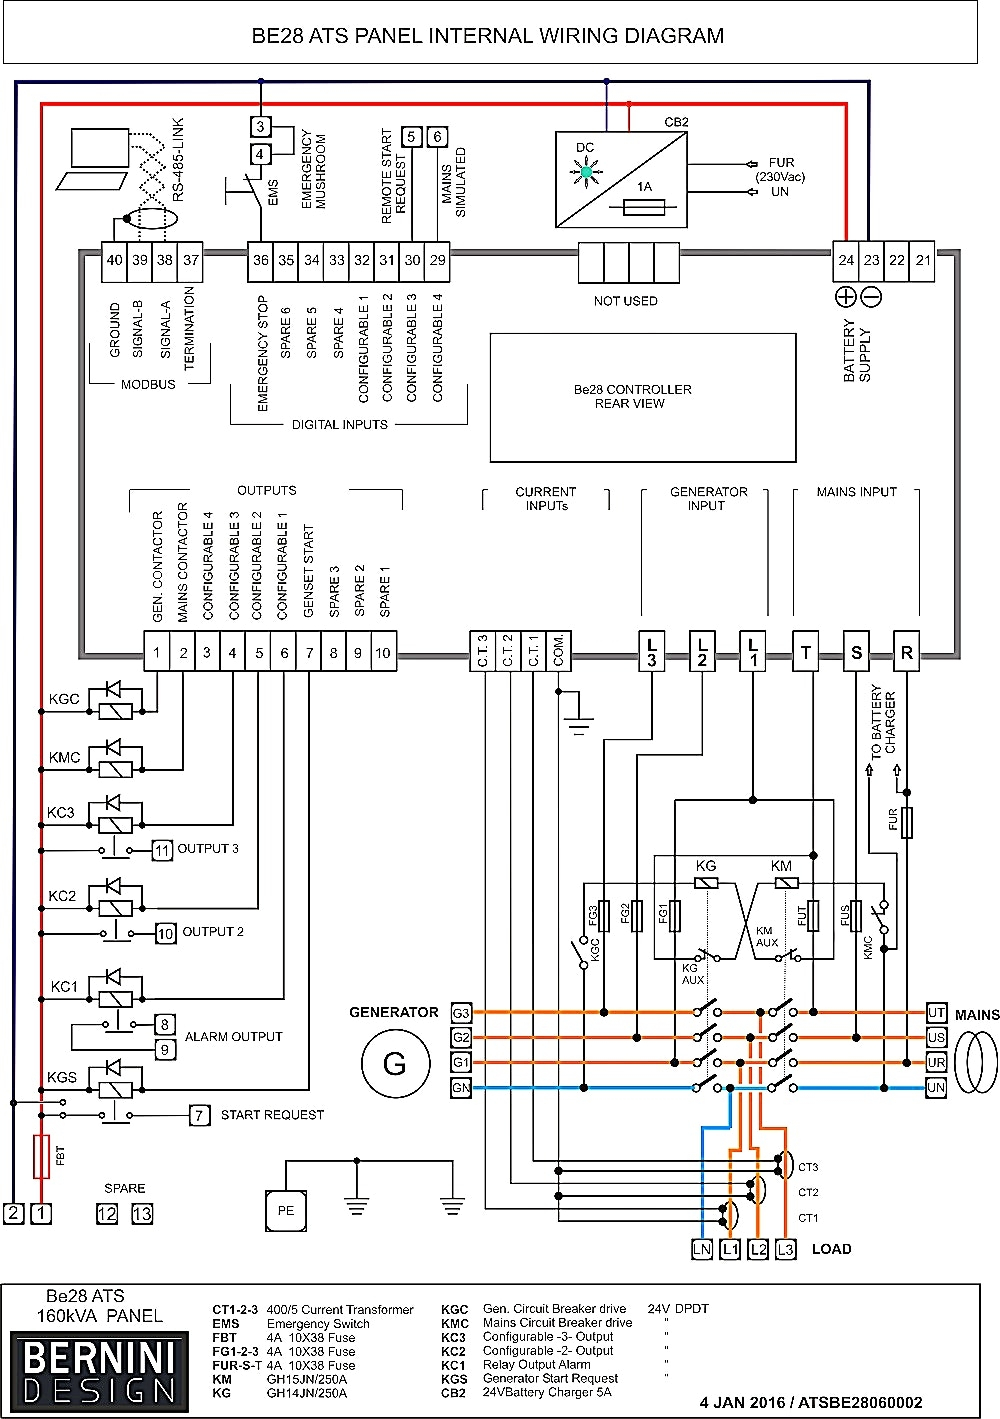 generac generator wiring diagram Download-asco automatic transfer switch wiring diagram Generac Automatic Transfer Switch. DOWNLOAD. Wiring Diagram ...